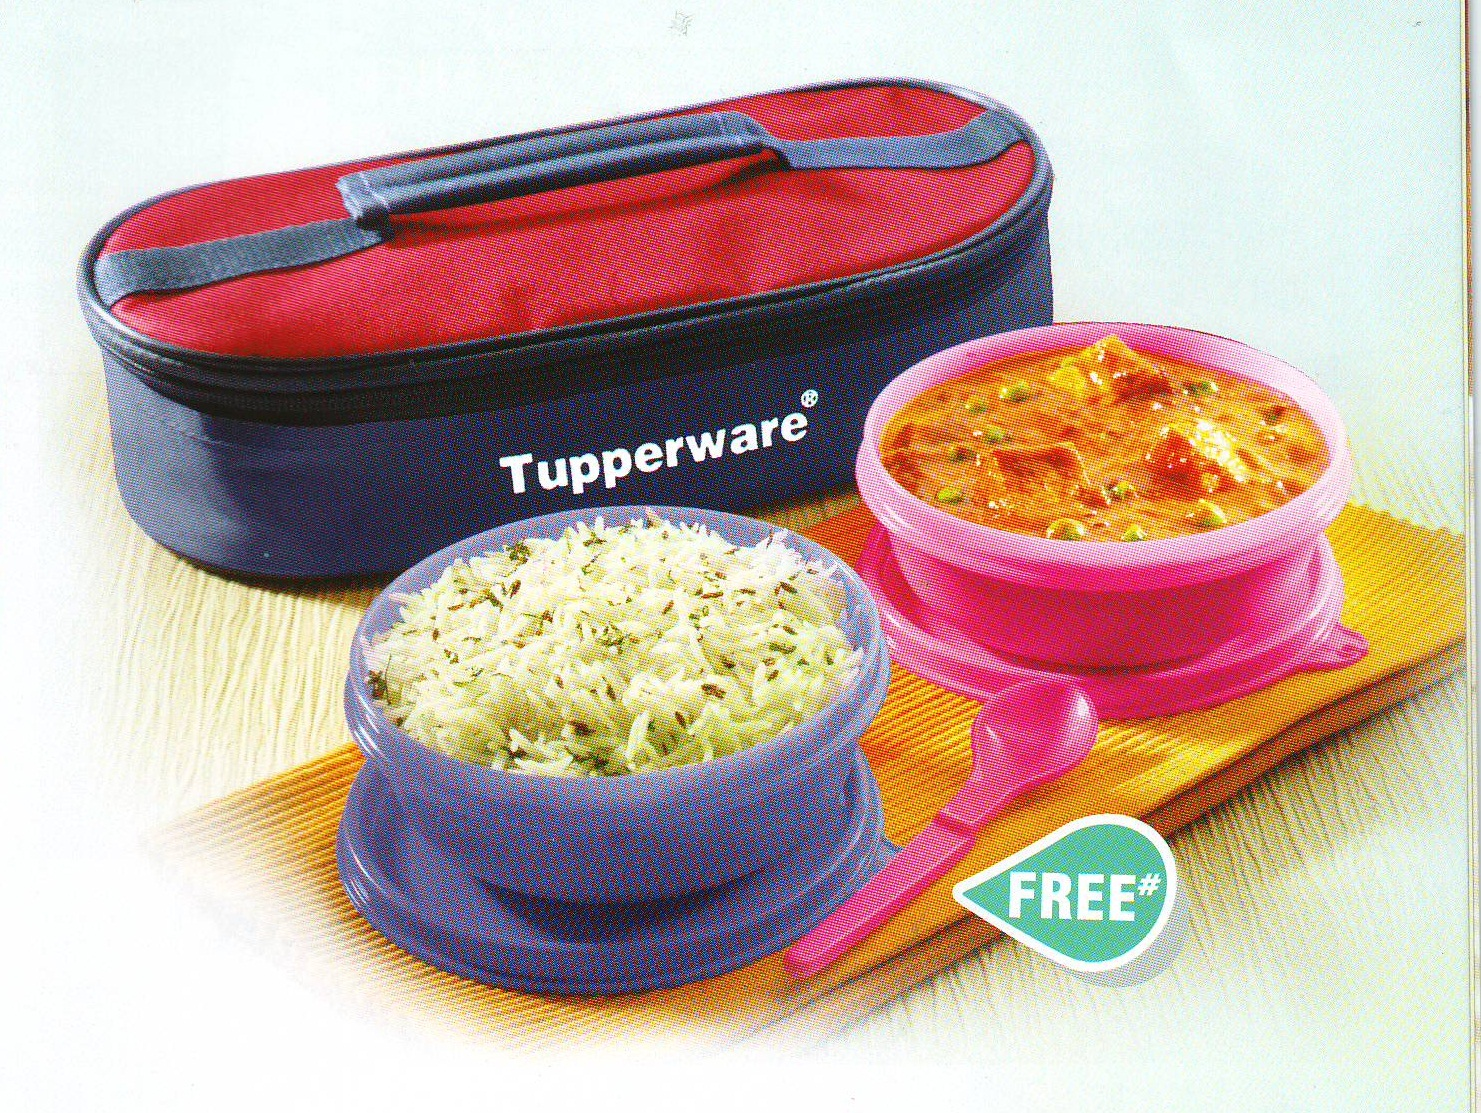 Tupperware products online shopping india